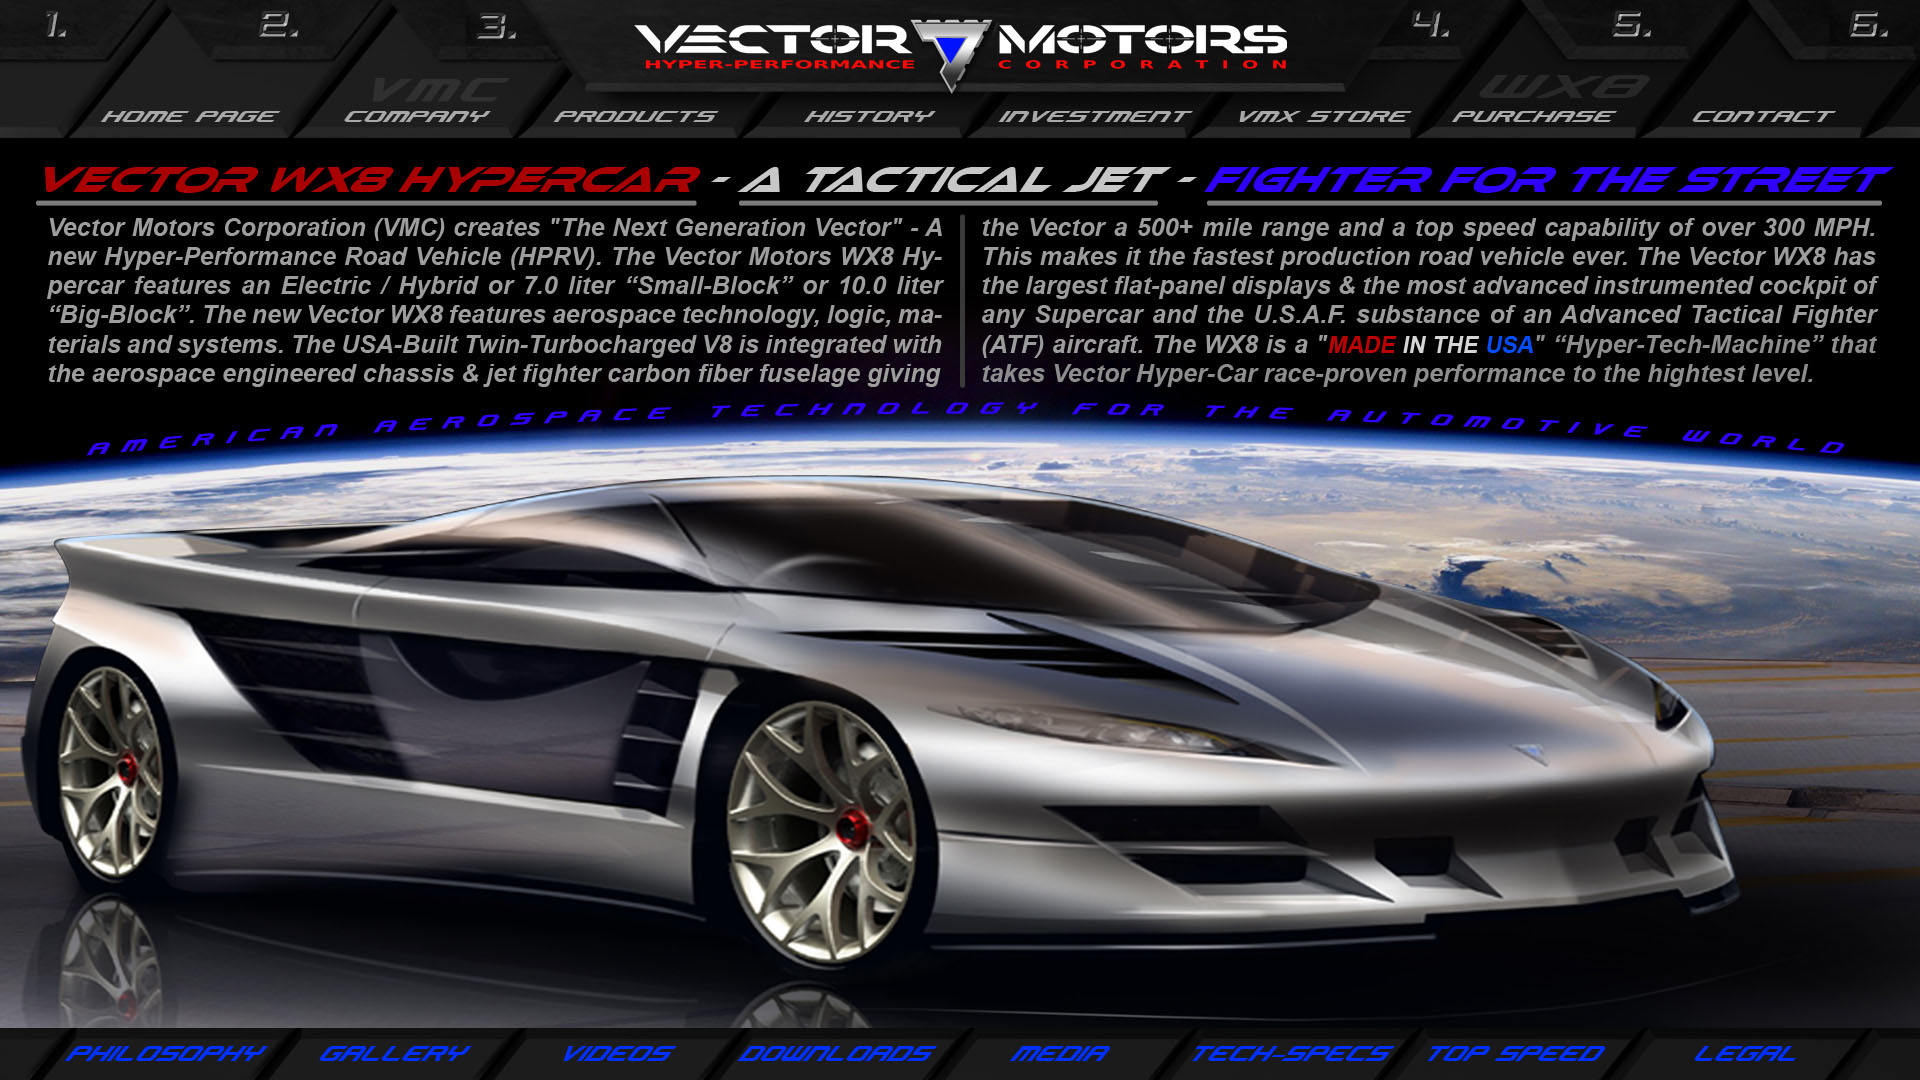 1920x1080 Vector Motors Corporation